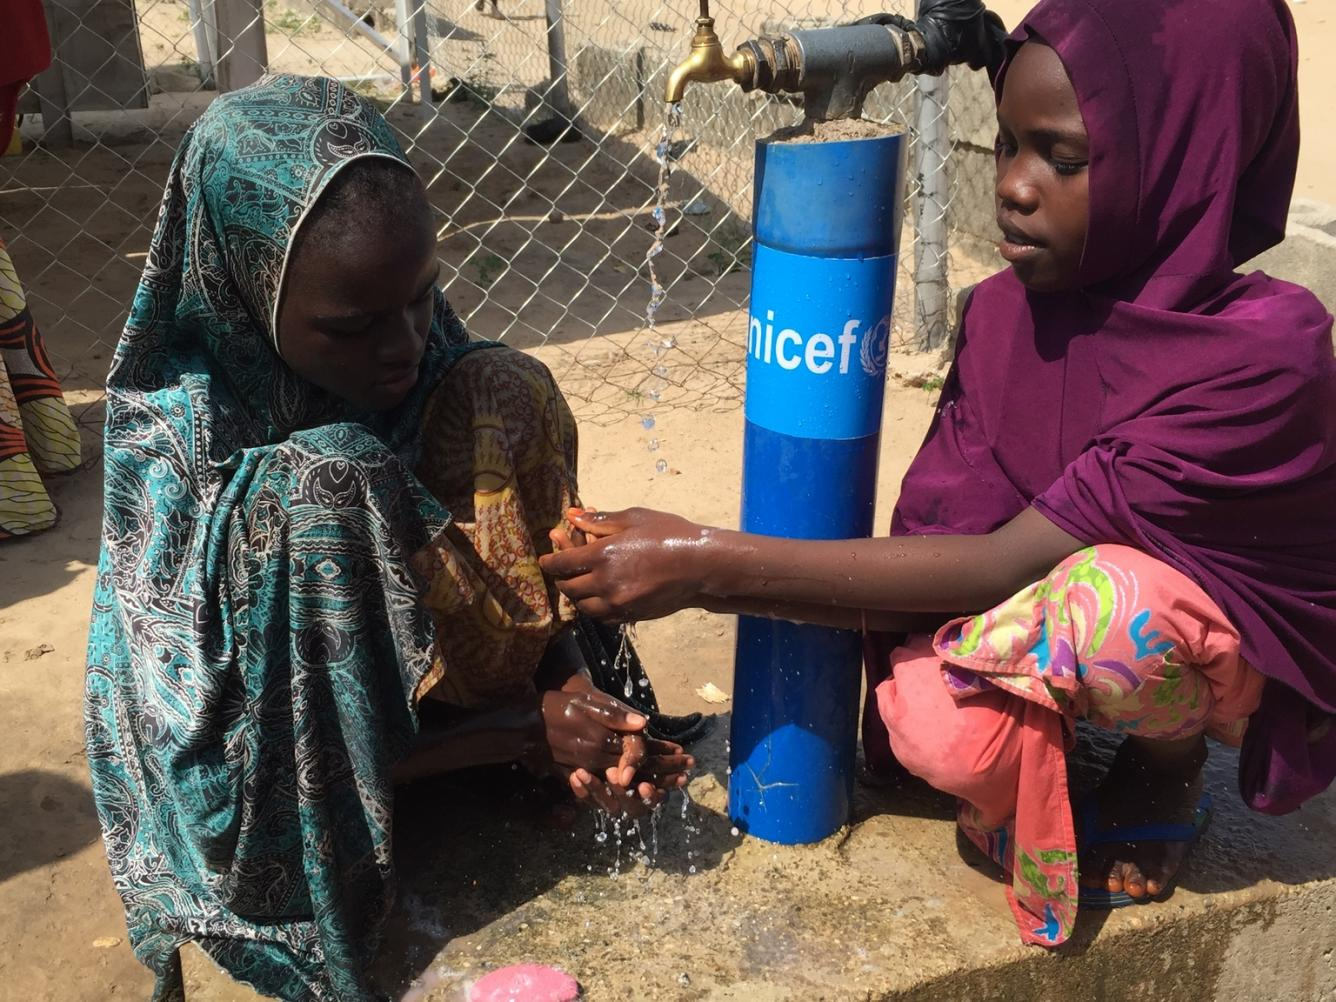 In 2016, security returned to some areas of north-east Nigeria, allowing aid workers to visit sites that were previously under Boko Haram control. But this new access revealed an acute humanitarian situation, with alarming rates of malnutrition among children and an outbreak of wild poliovirus. In the three most directly affected states of Borno, Adamawa and Yobe, an estimated 8.5 million people will require humanitarian assistance in 2017, including 1.63 million internally displaced persons, more than ha